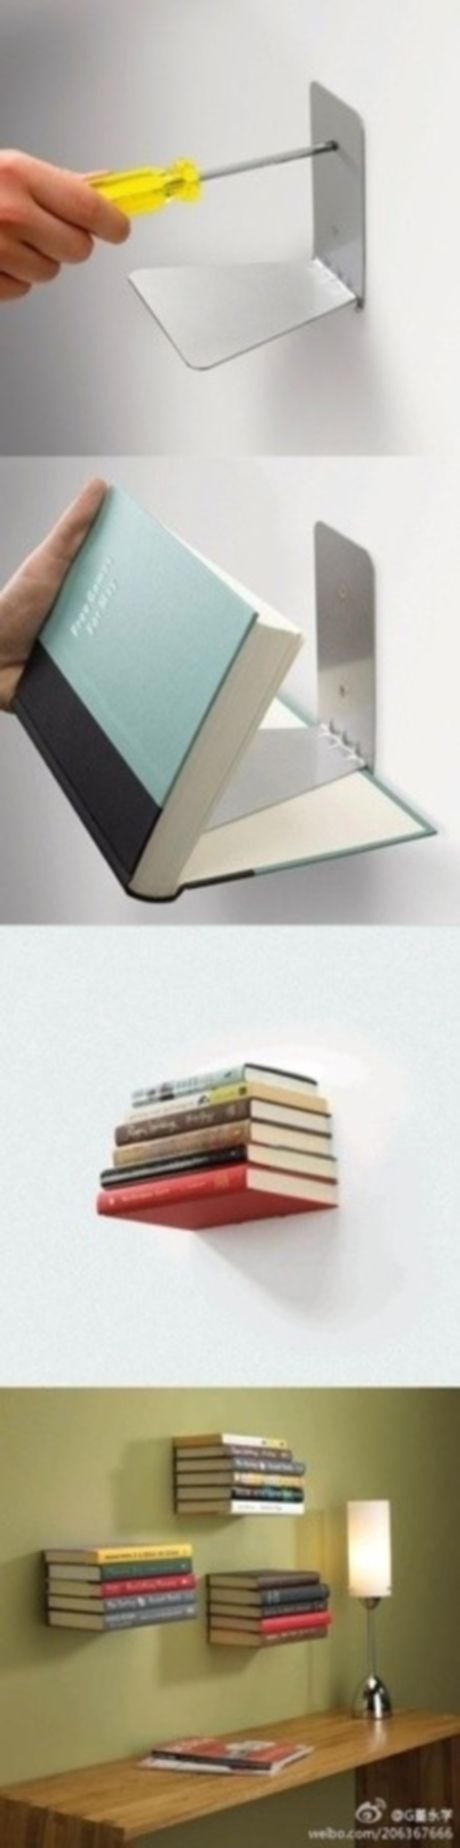 Top 40 DIY Projects Gadgets And Ideas For Your Home-homesthetics.net (5)